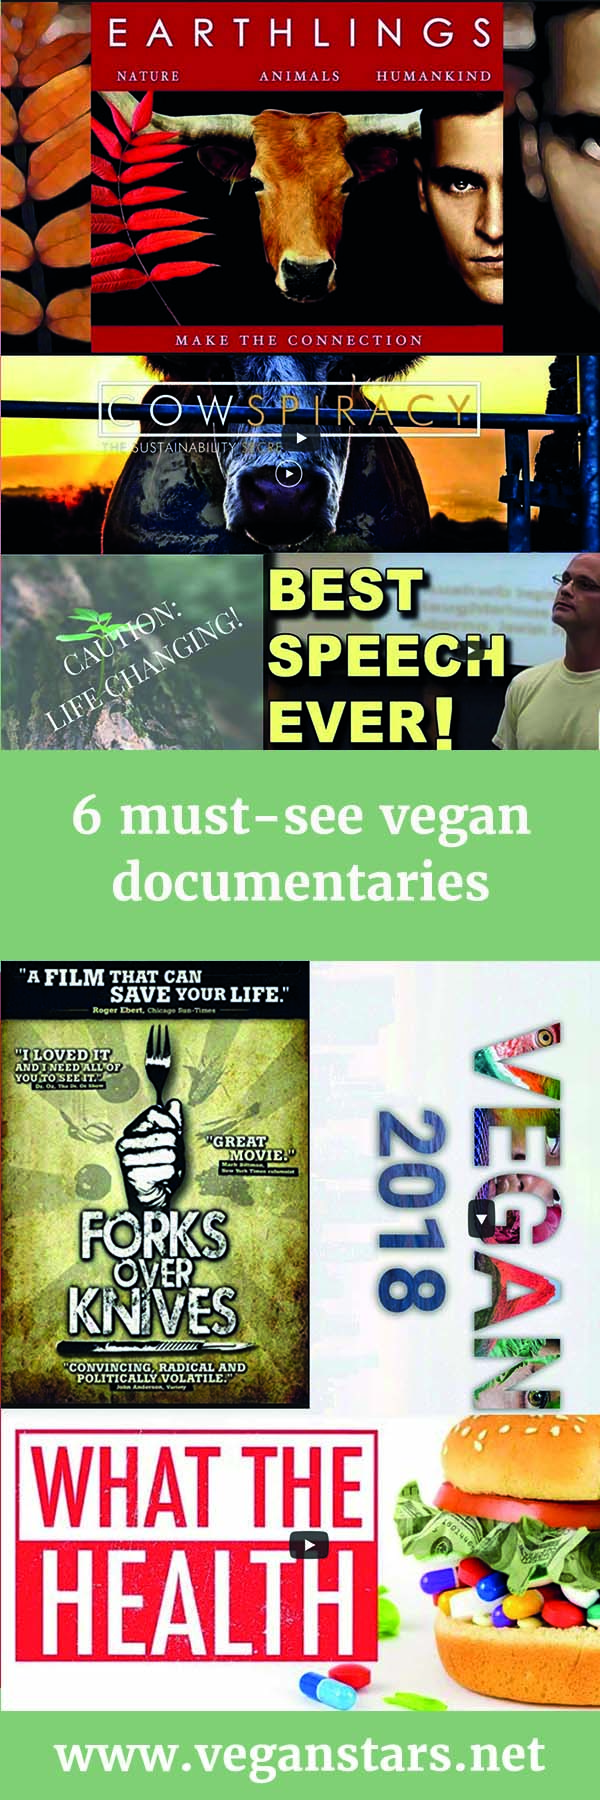 6 must-see vegan documentaries